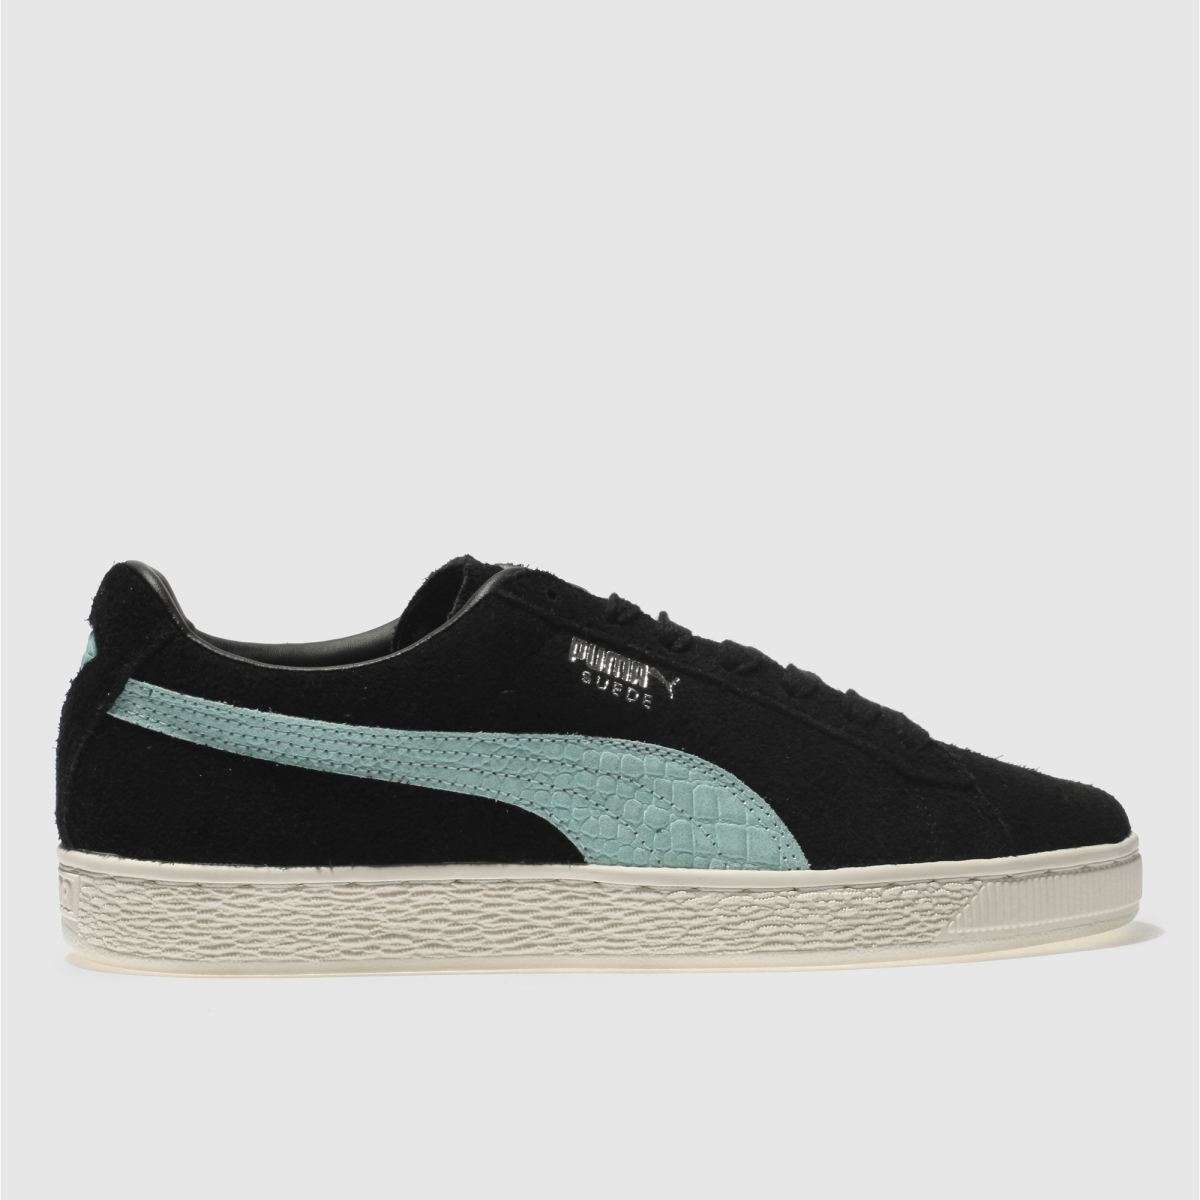 Puma Black And Blue Suede Diamond Trainers